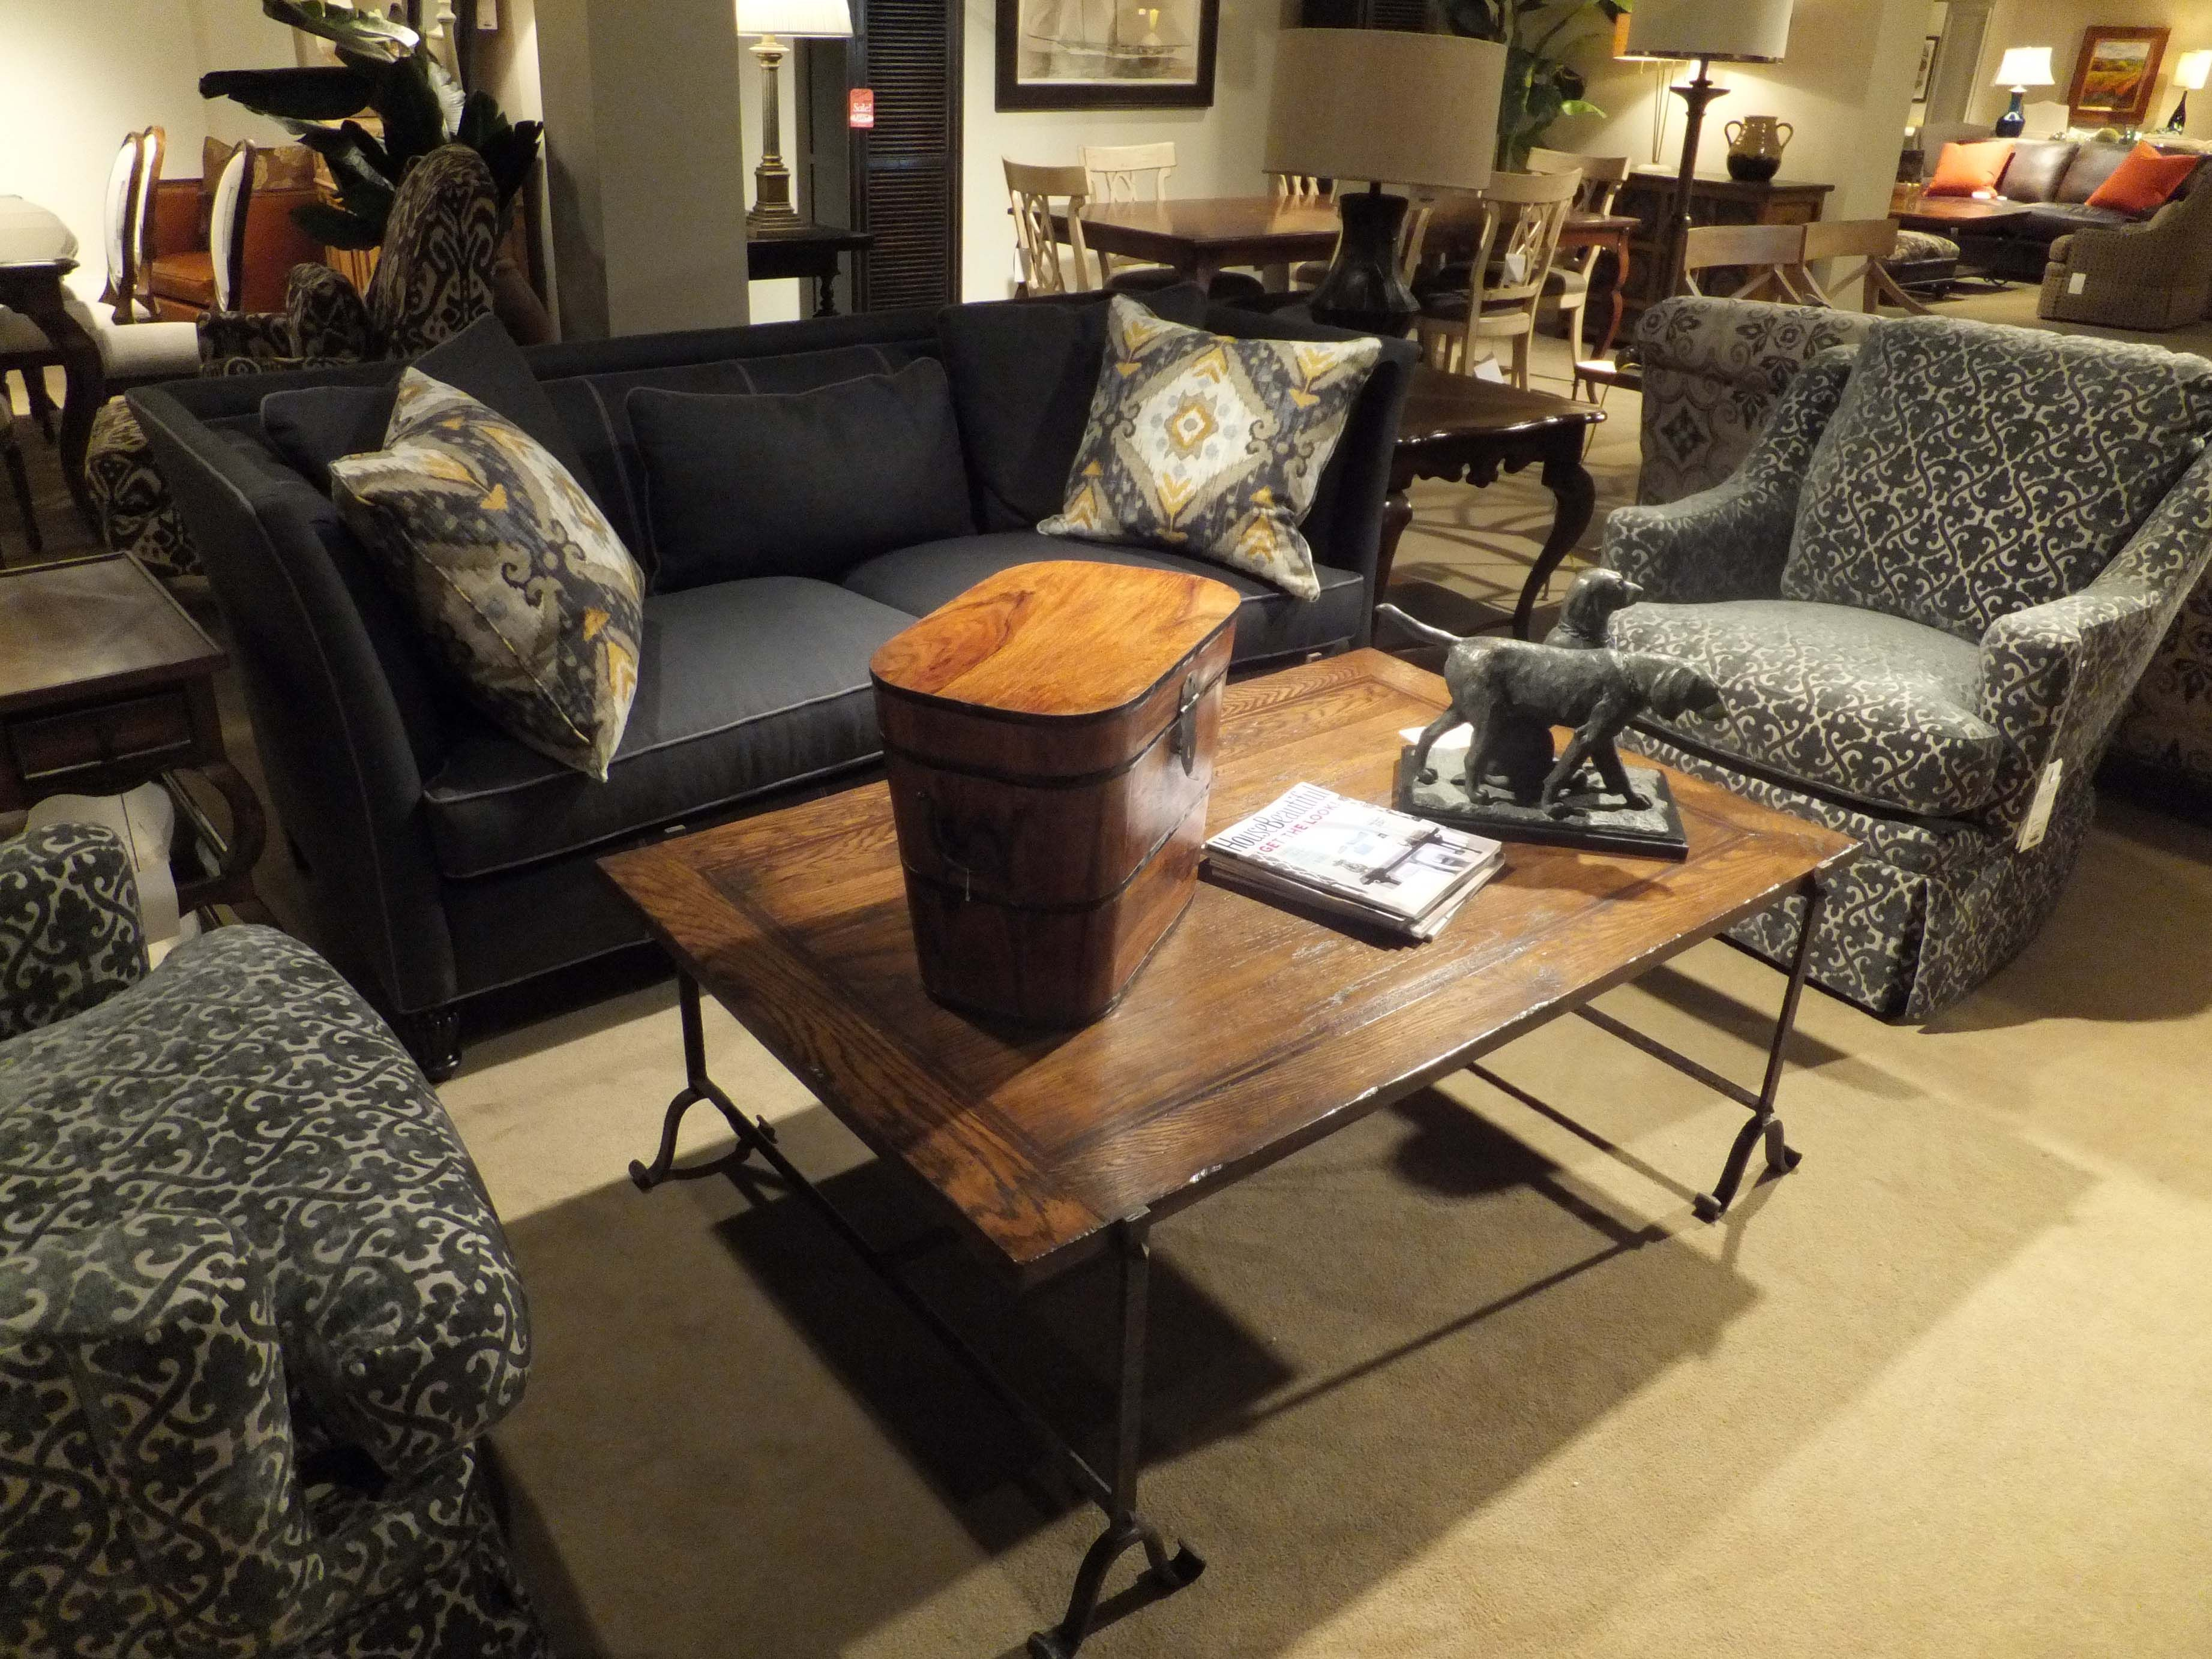 Best This Charcoal Grey Couch With Chairs Invites Conversations 400 x 300